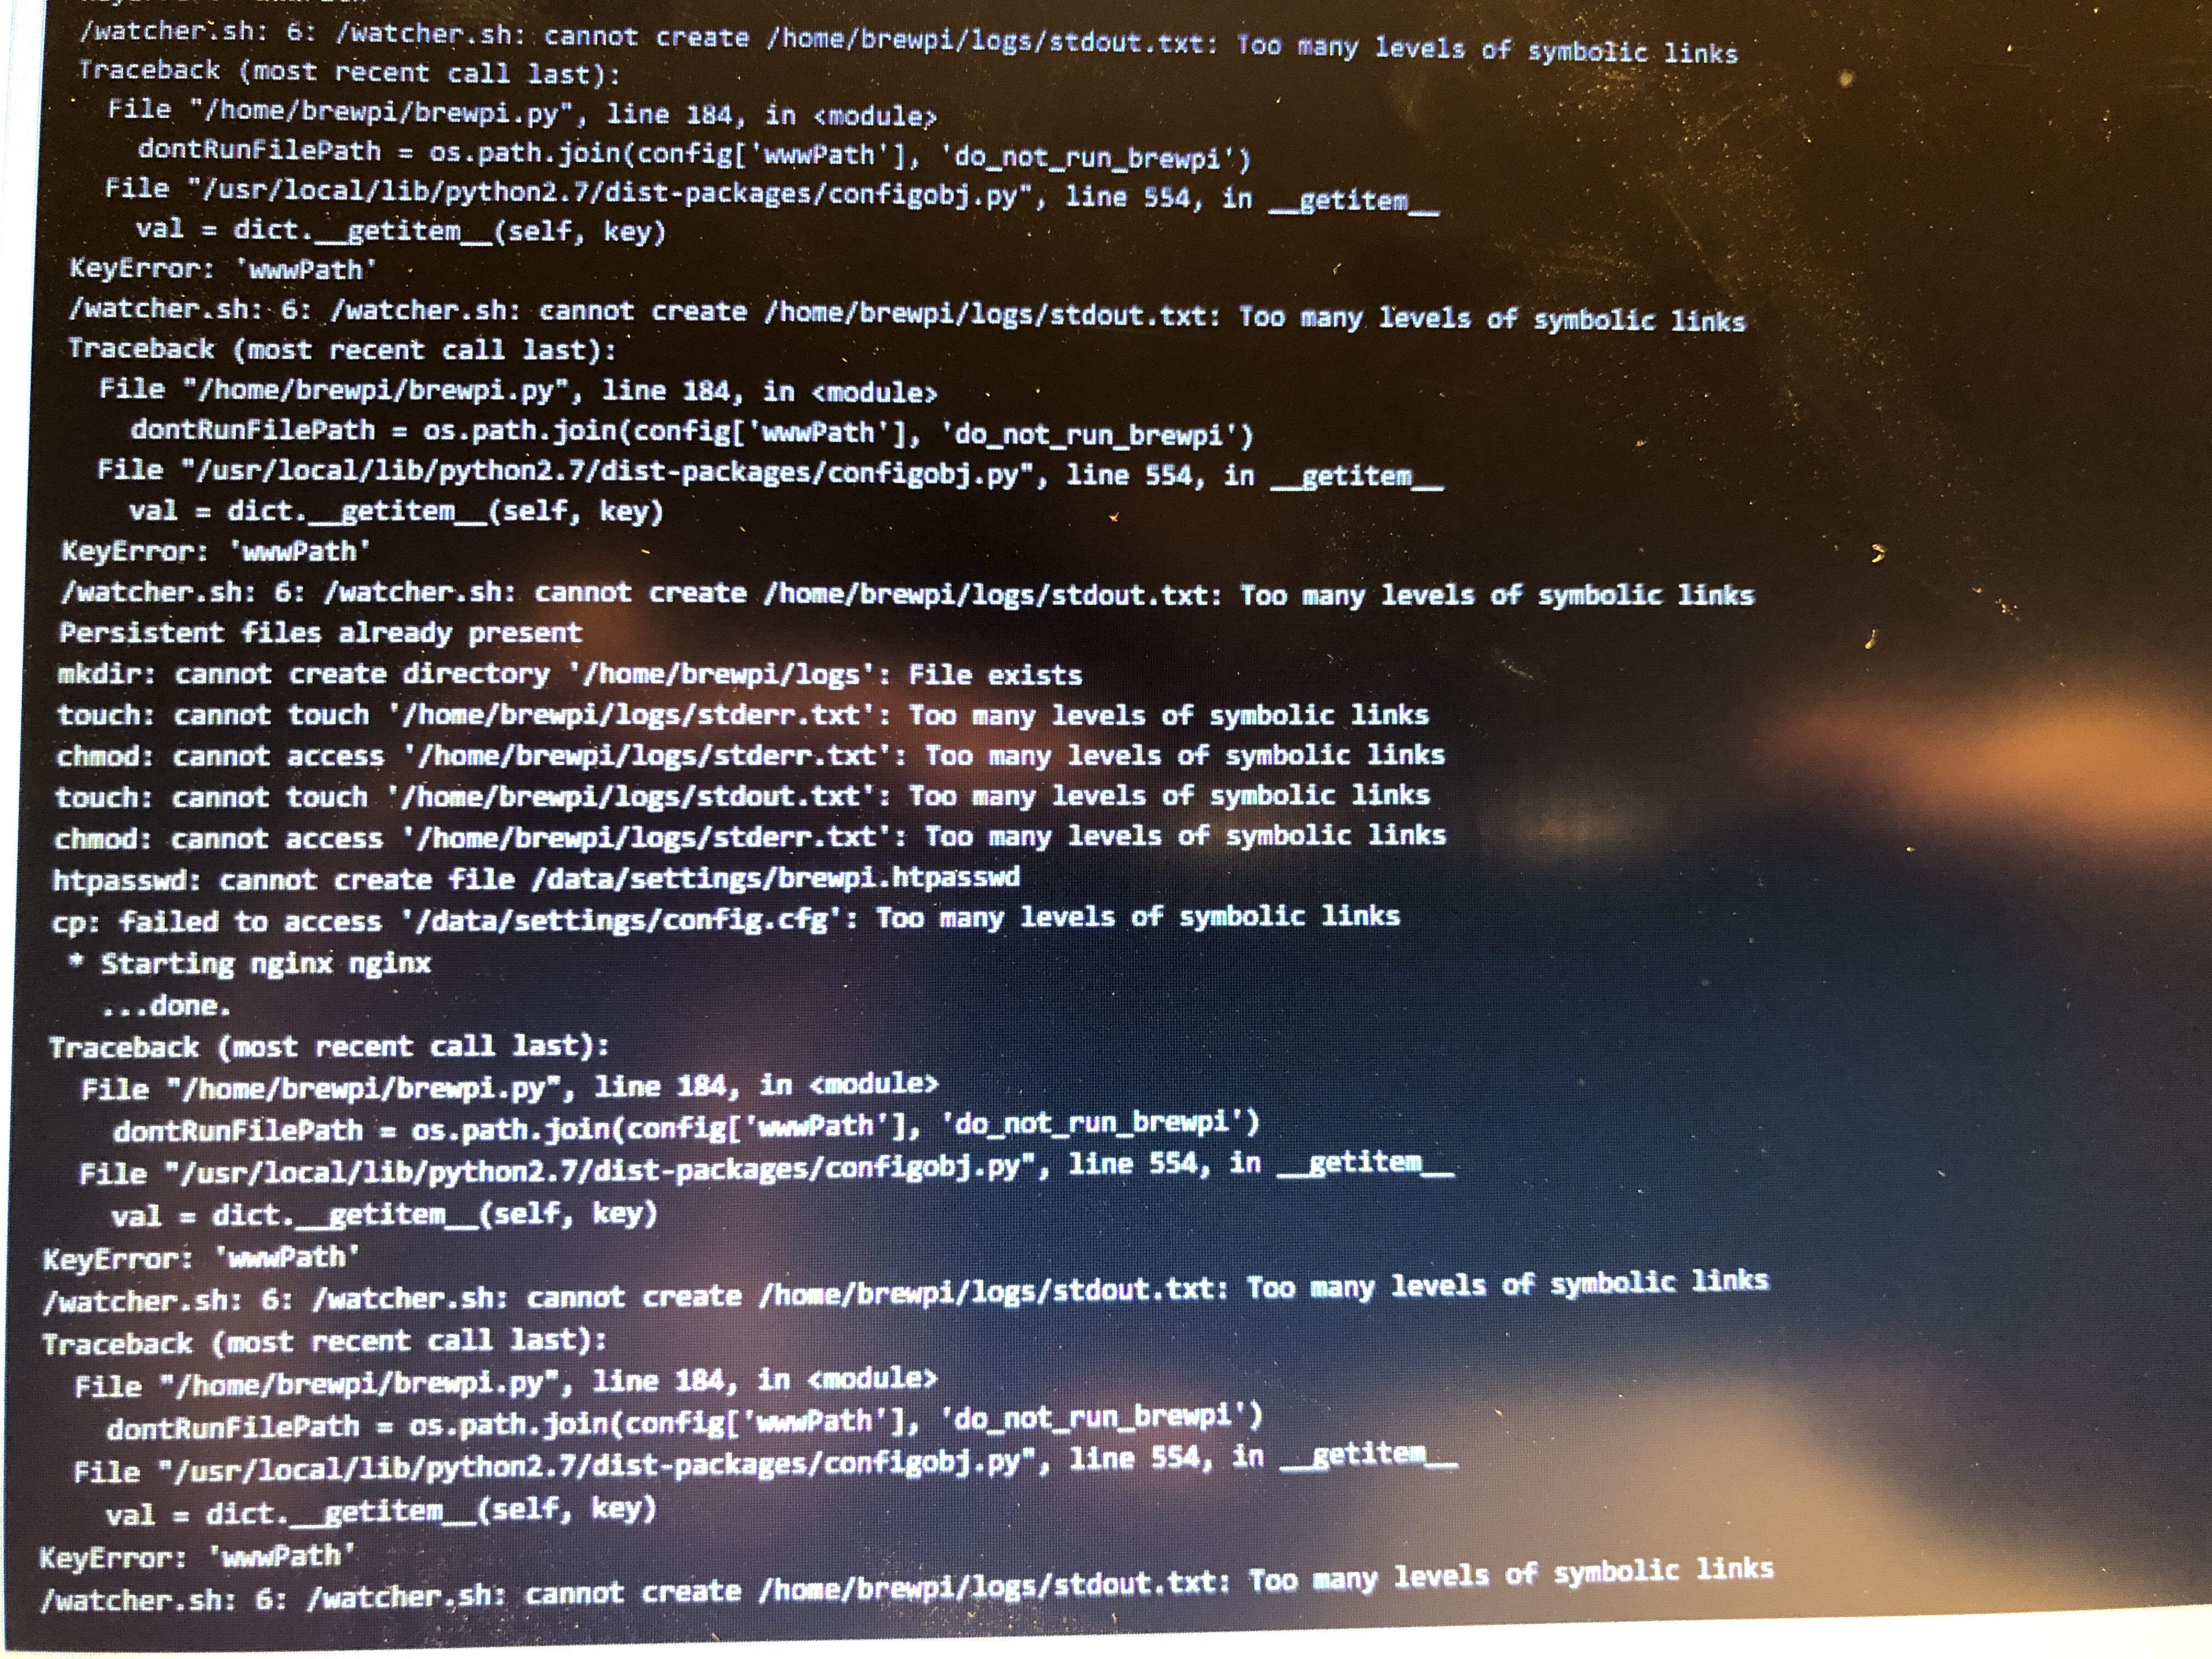 Script not running - nothing changed - Troubleshooting - BrewPi